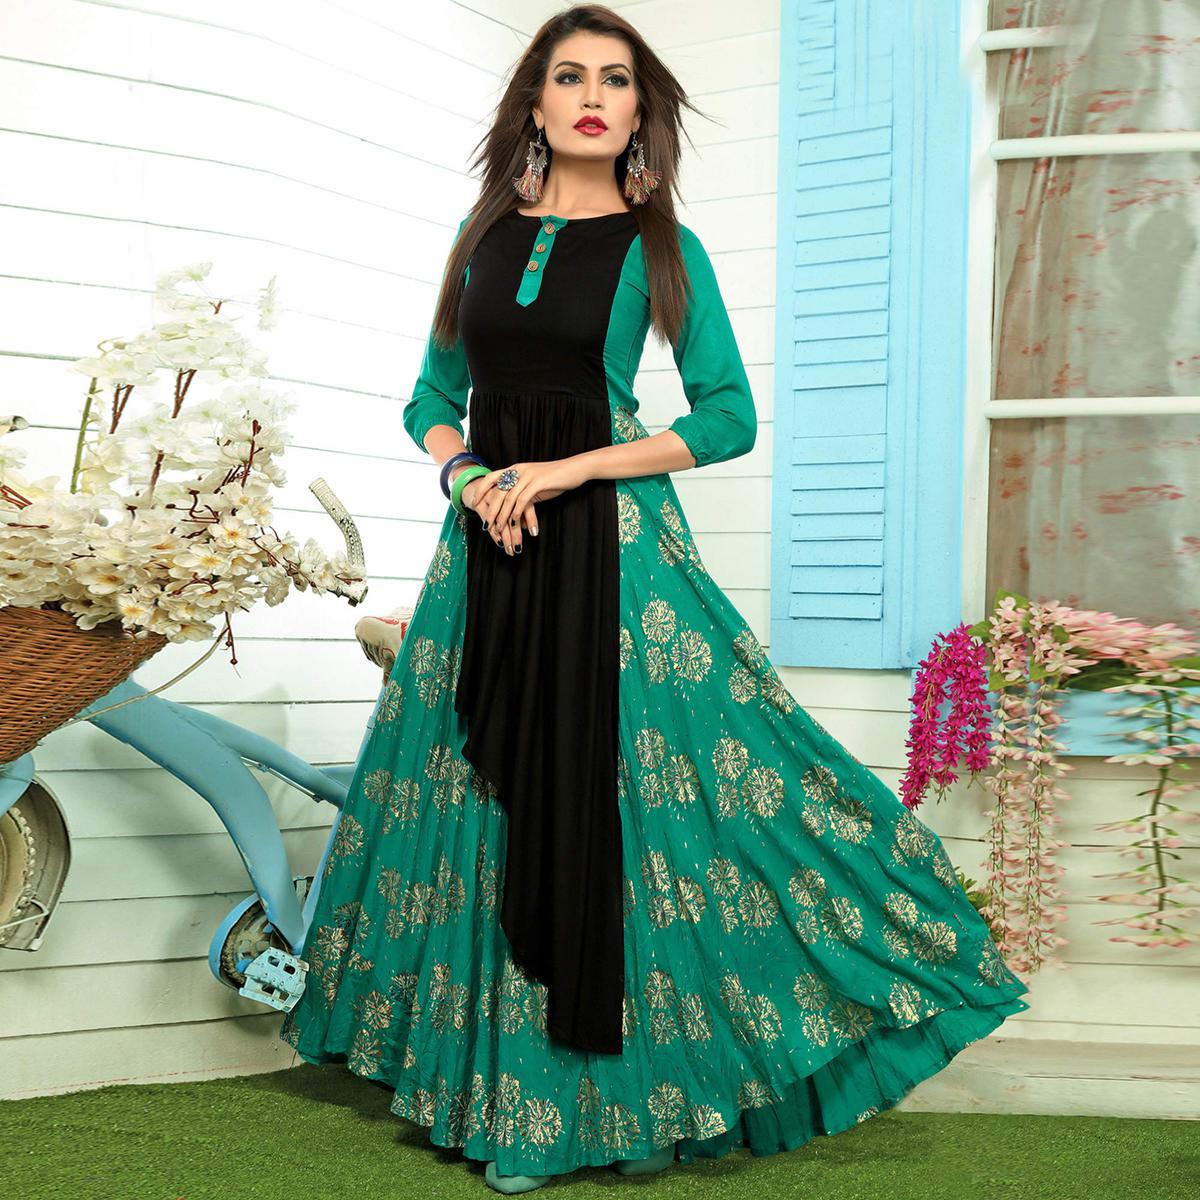 Amazing Turquoise Green-Black Colored Partywear Printed Rayon Long Kurti